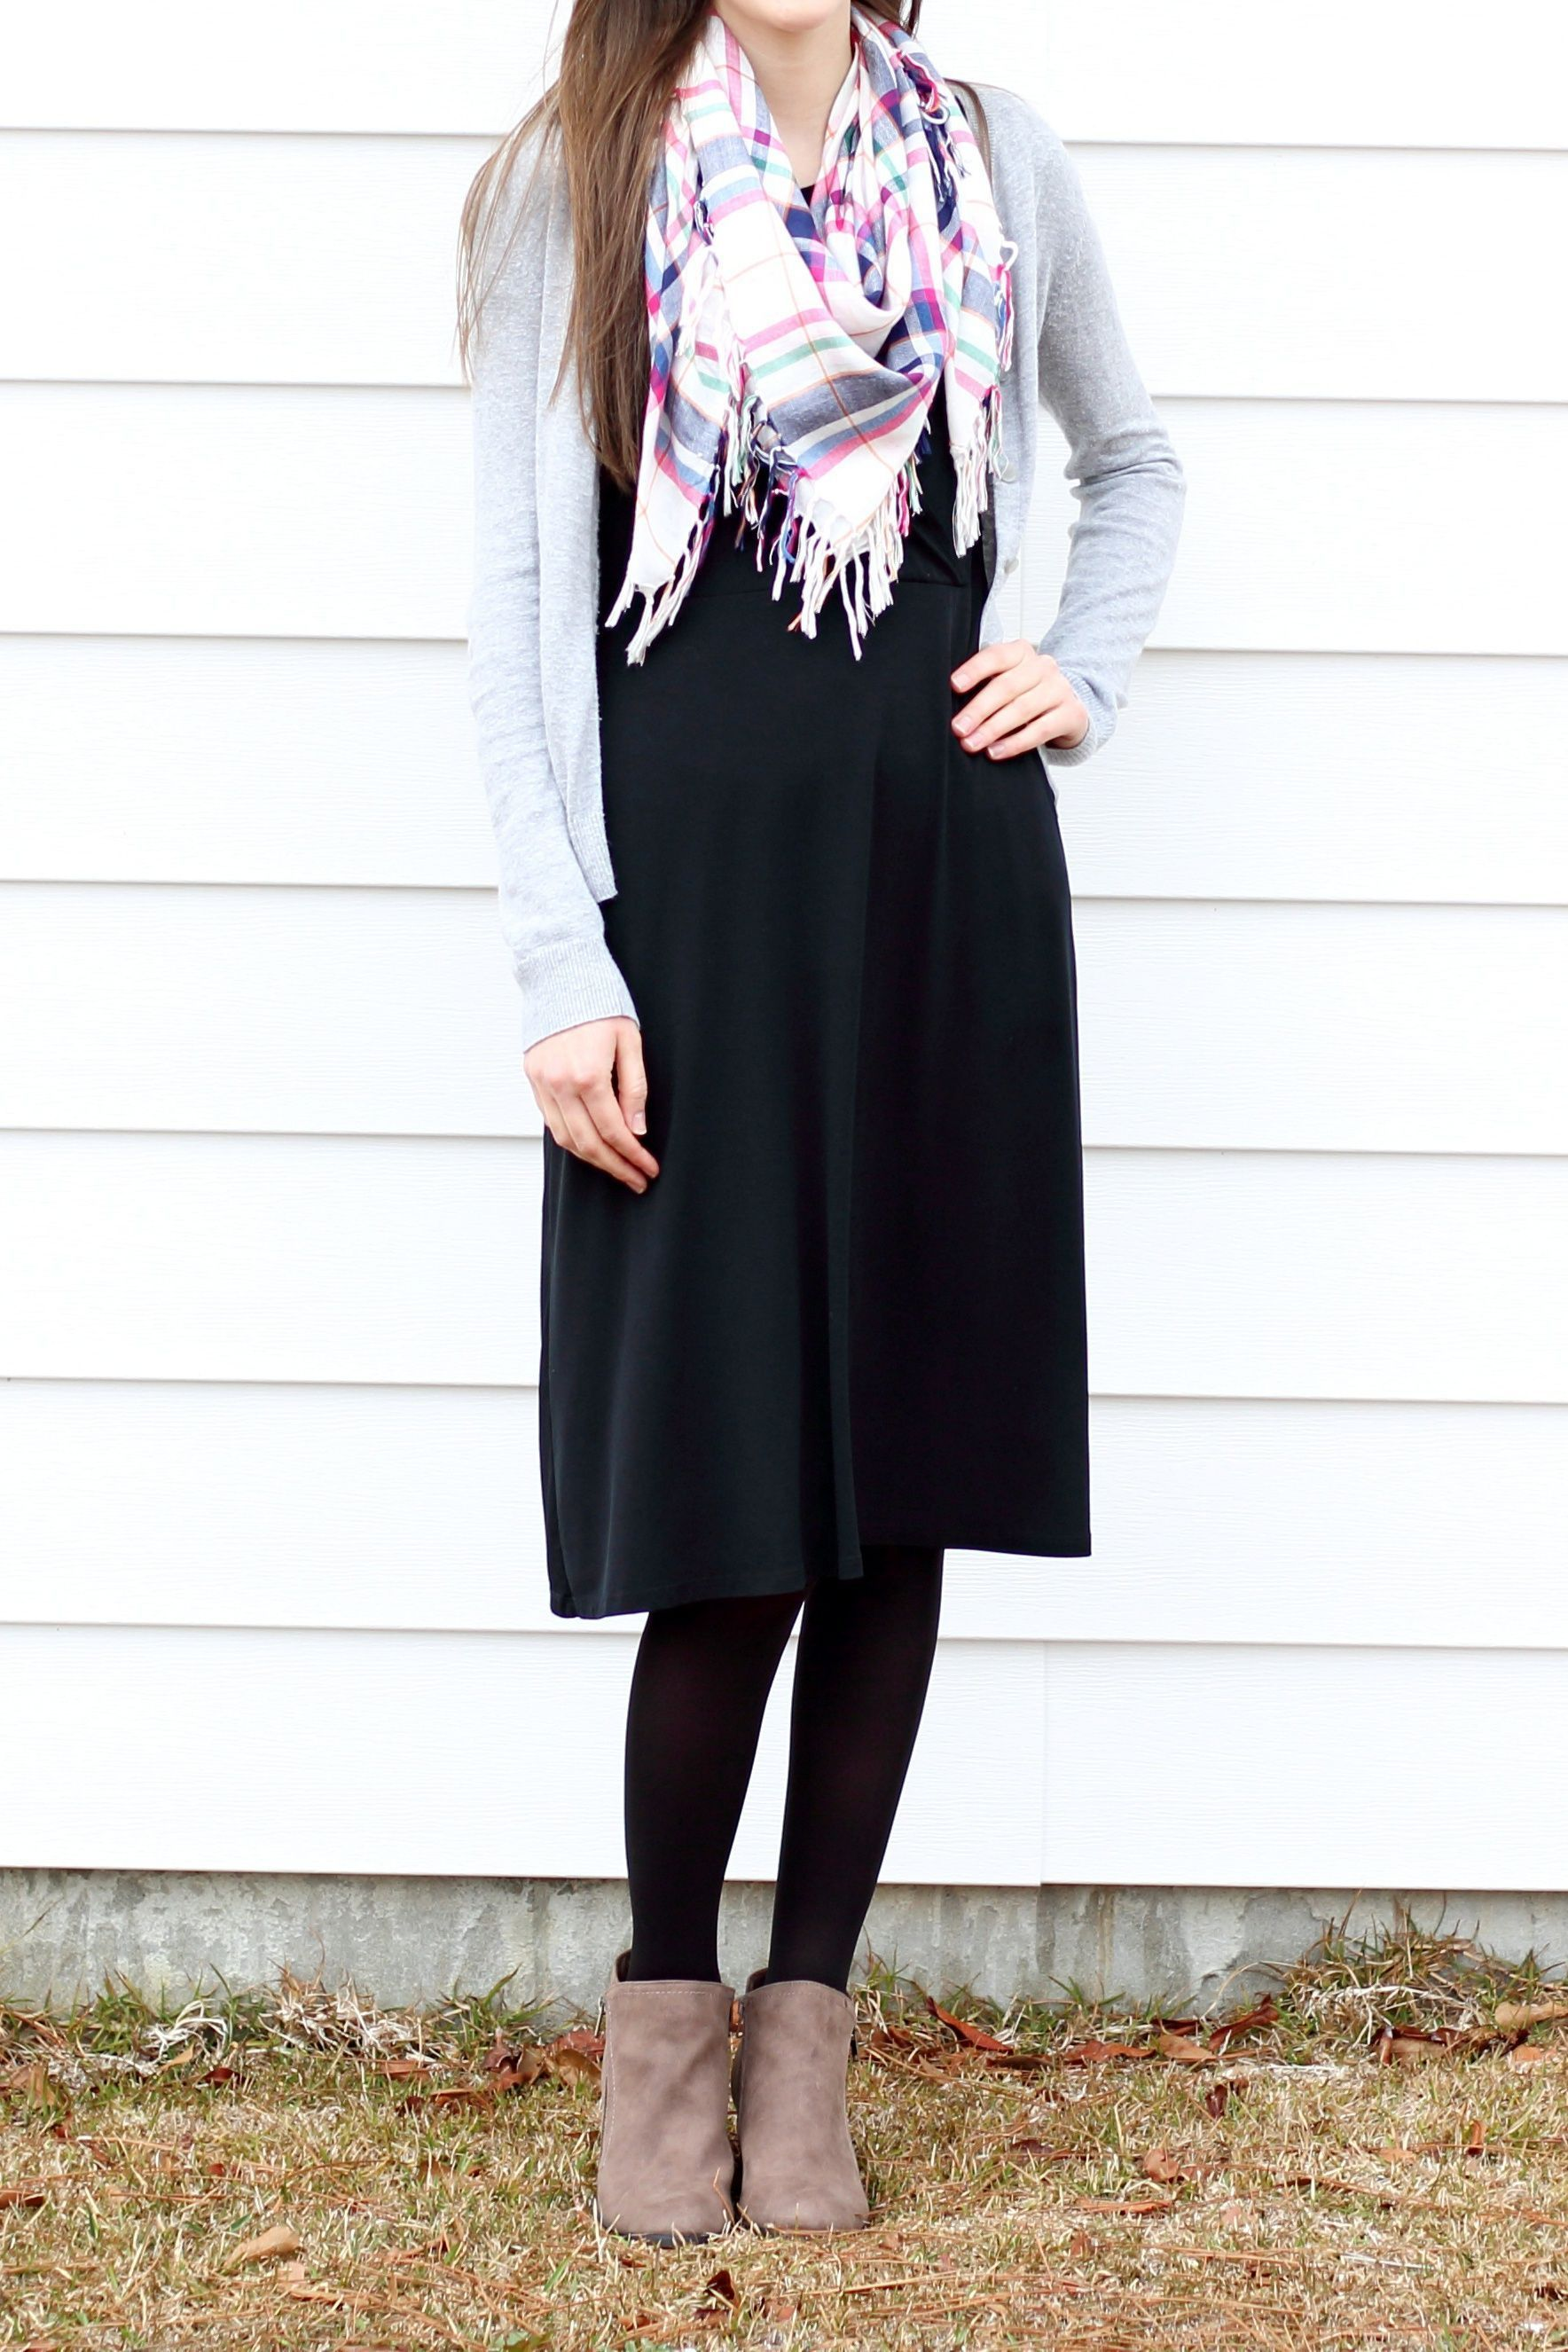 inspiring modest casual bedroom | Modest Dressy/Casual Outfit Idea for Church//Little Black ...